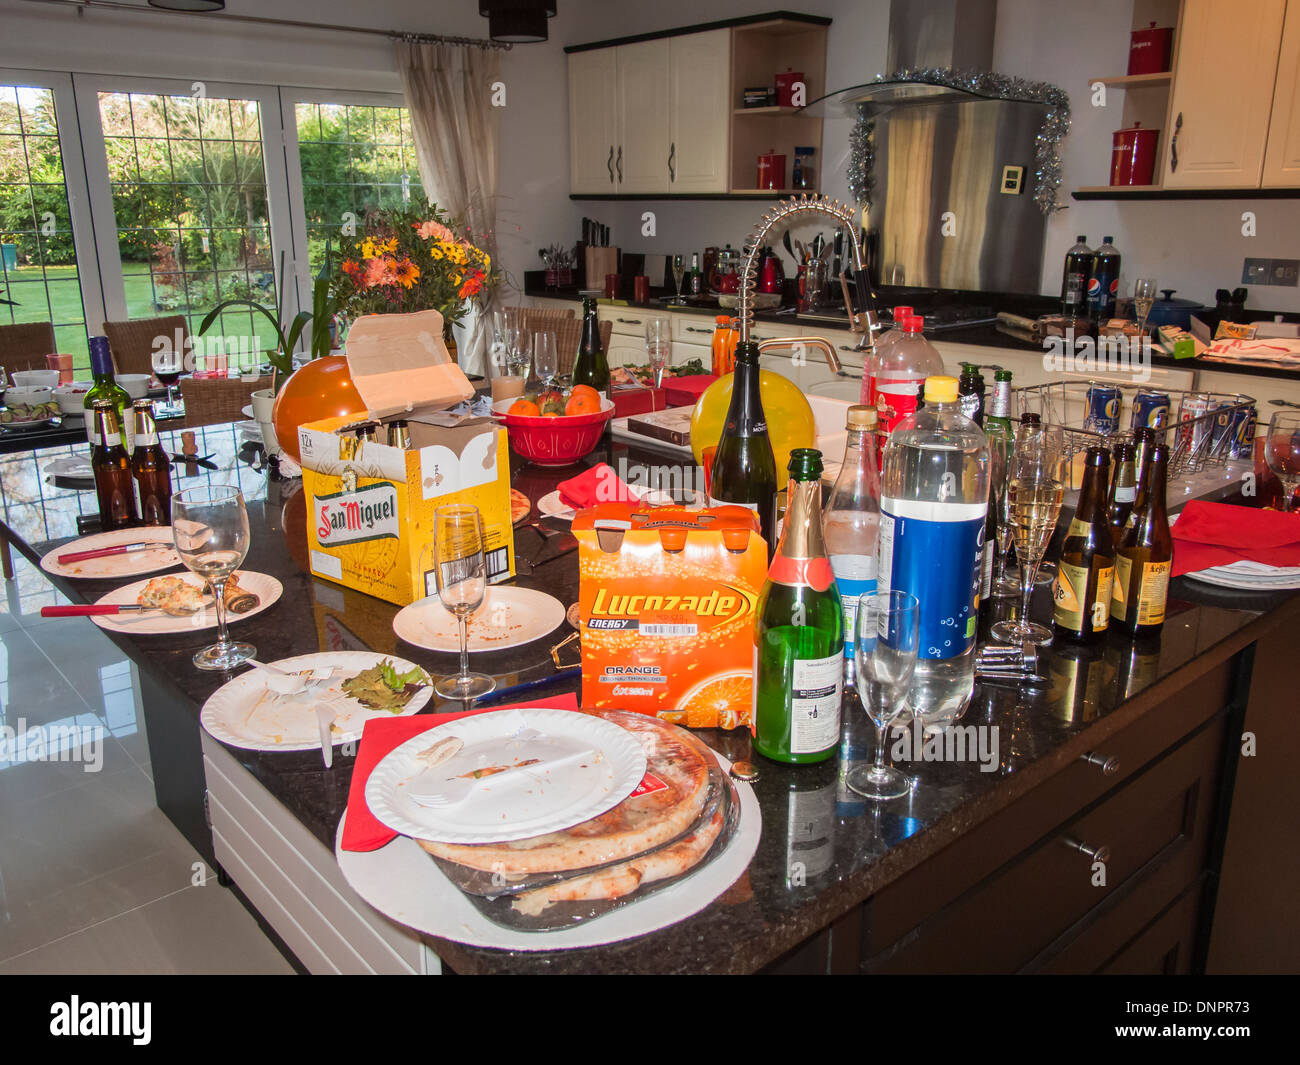 Messy, untidy kitchen after a party - empty wine & beer bottles, dirty paper plates, left-over food, unwashed champagne glasses - Stock Image